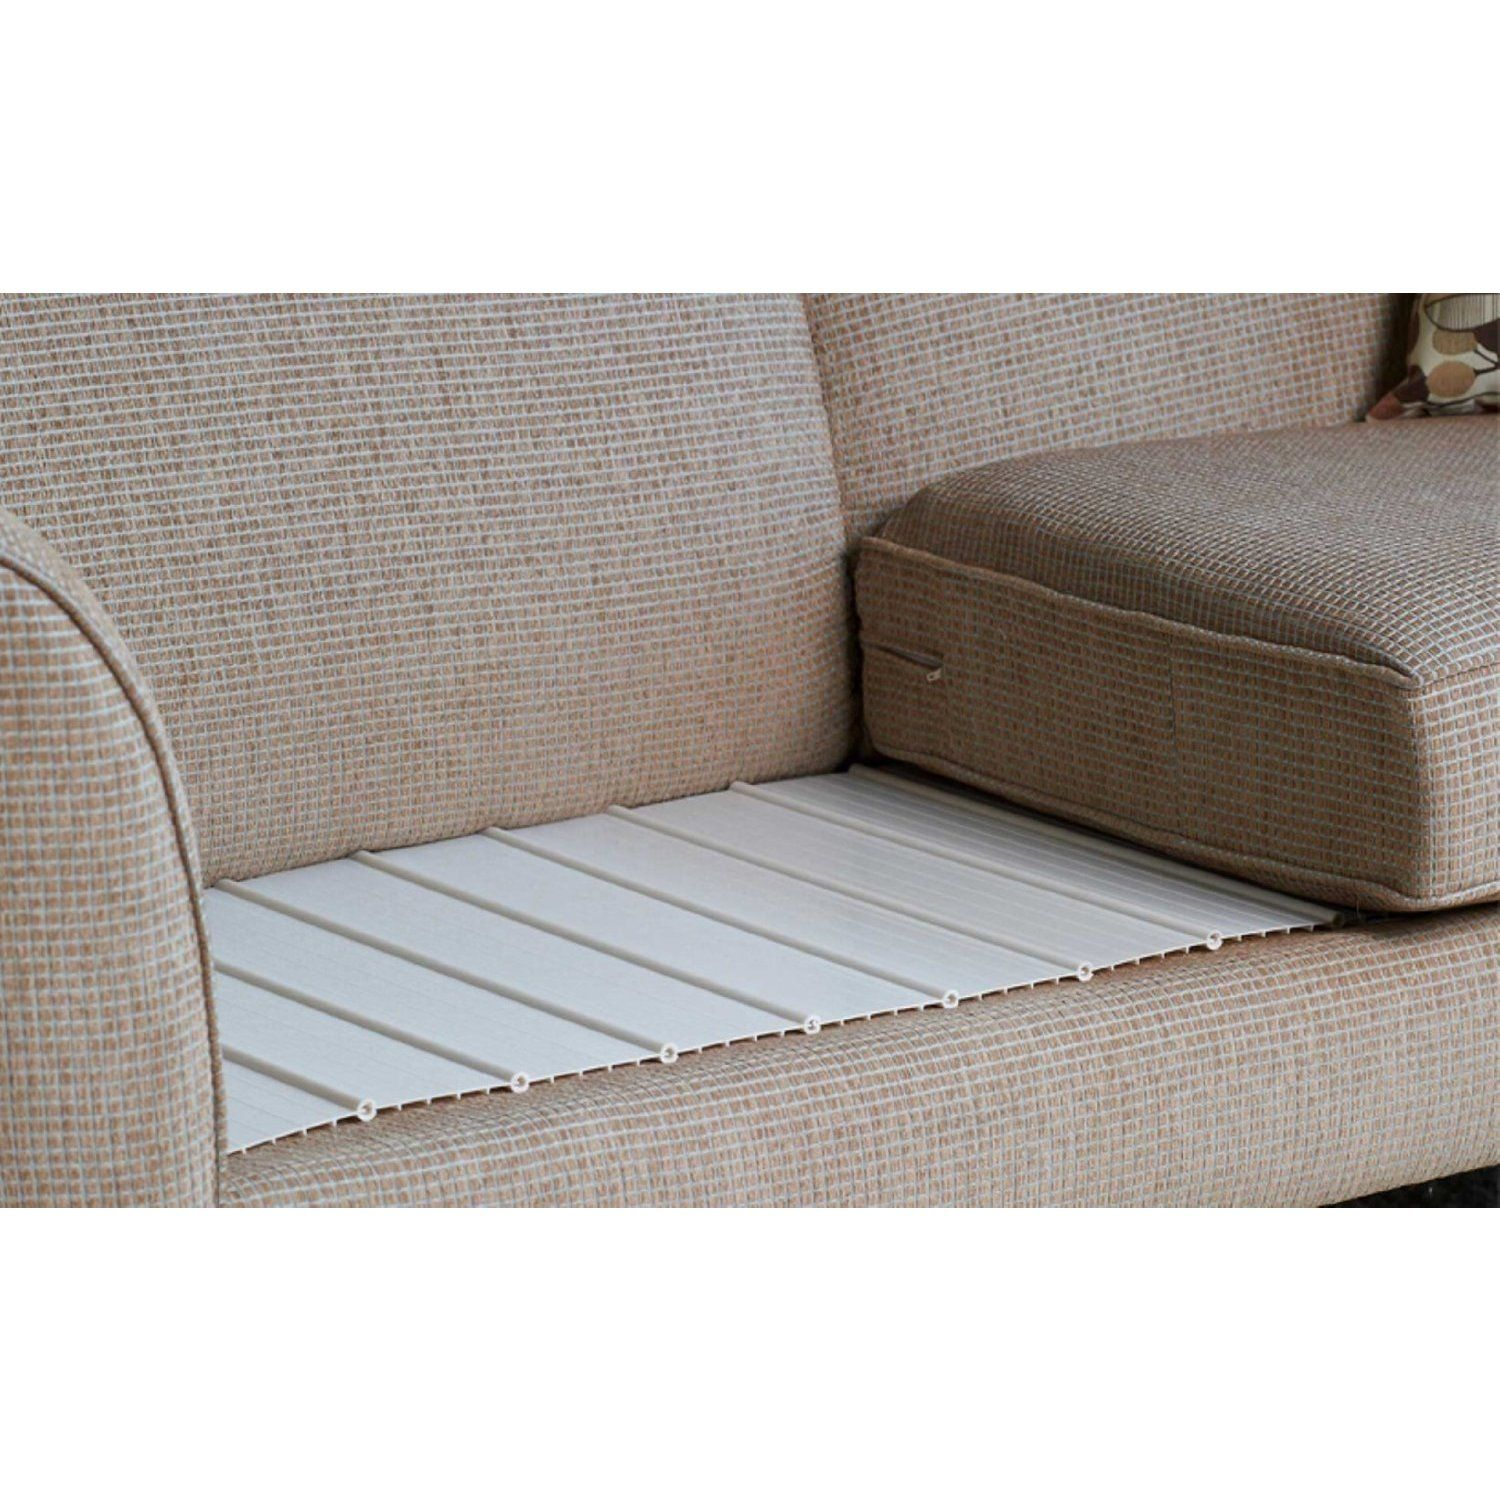 Sofa Bed Support Board Henderson Cisco Supports Home Design Sagging Ideas